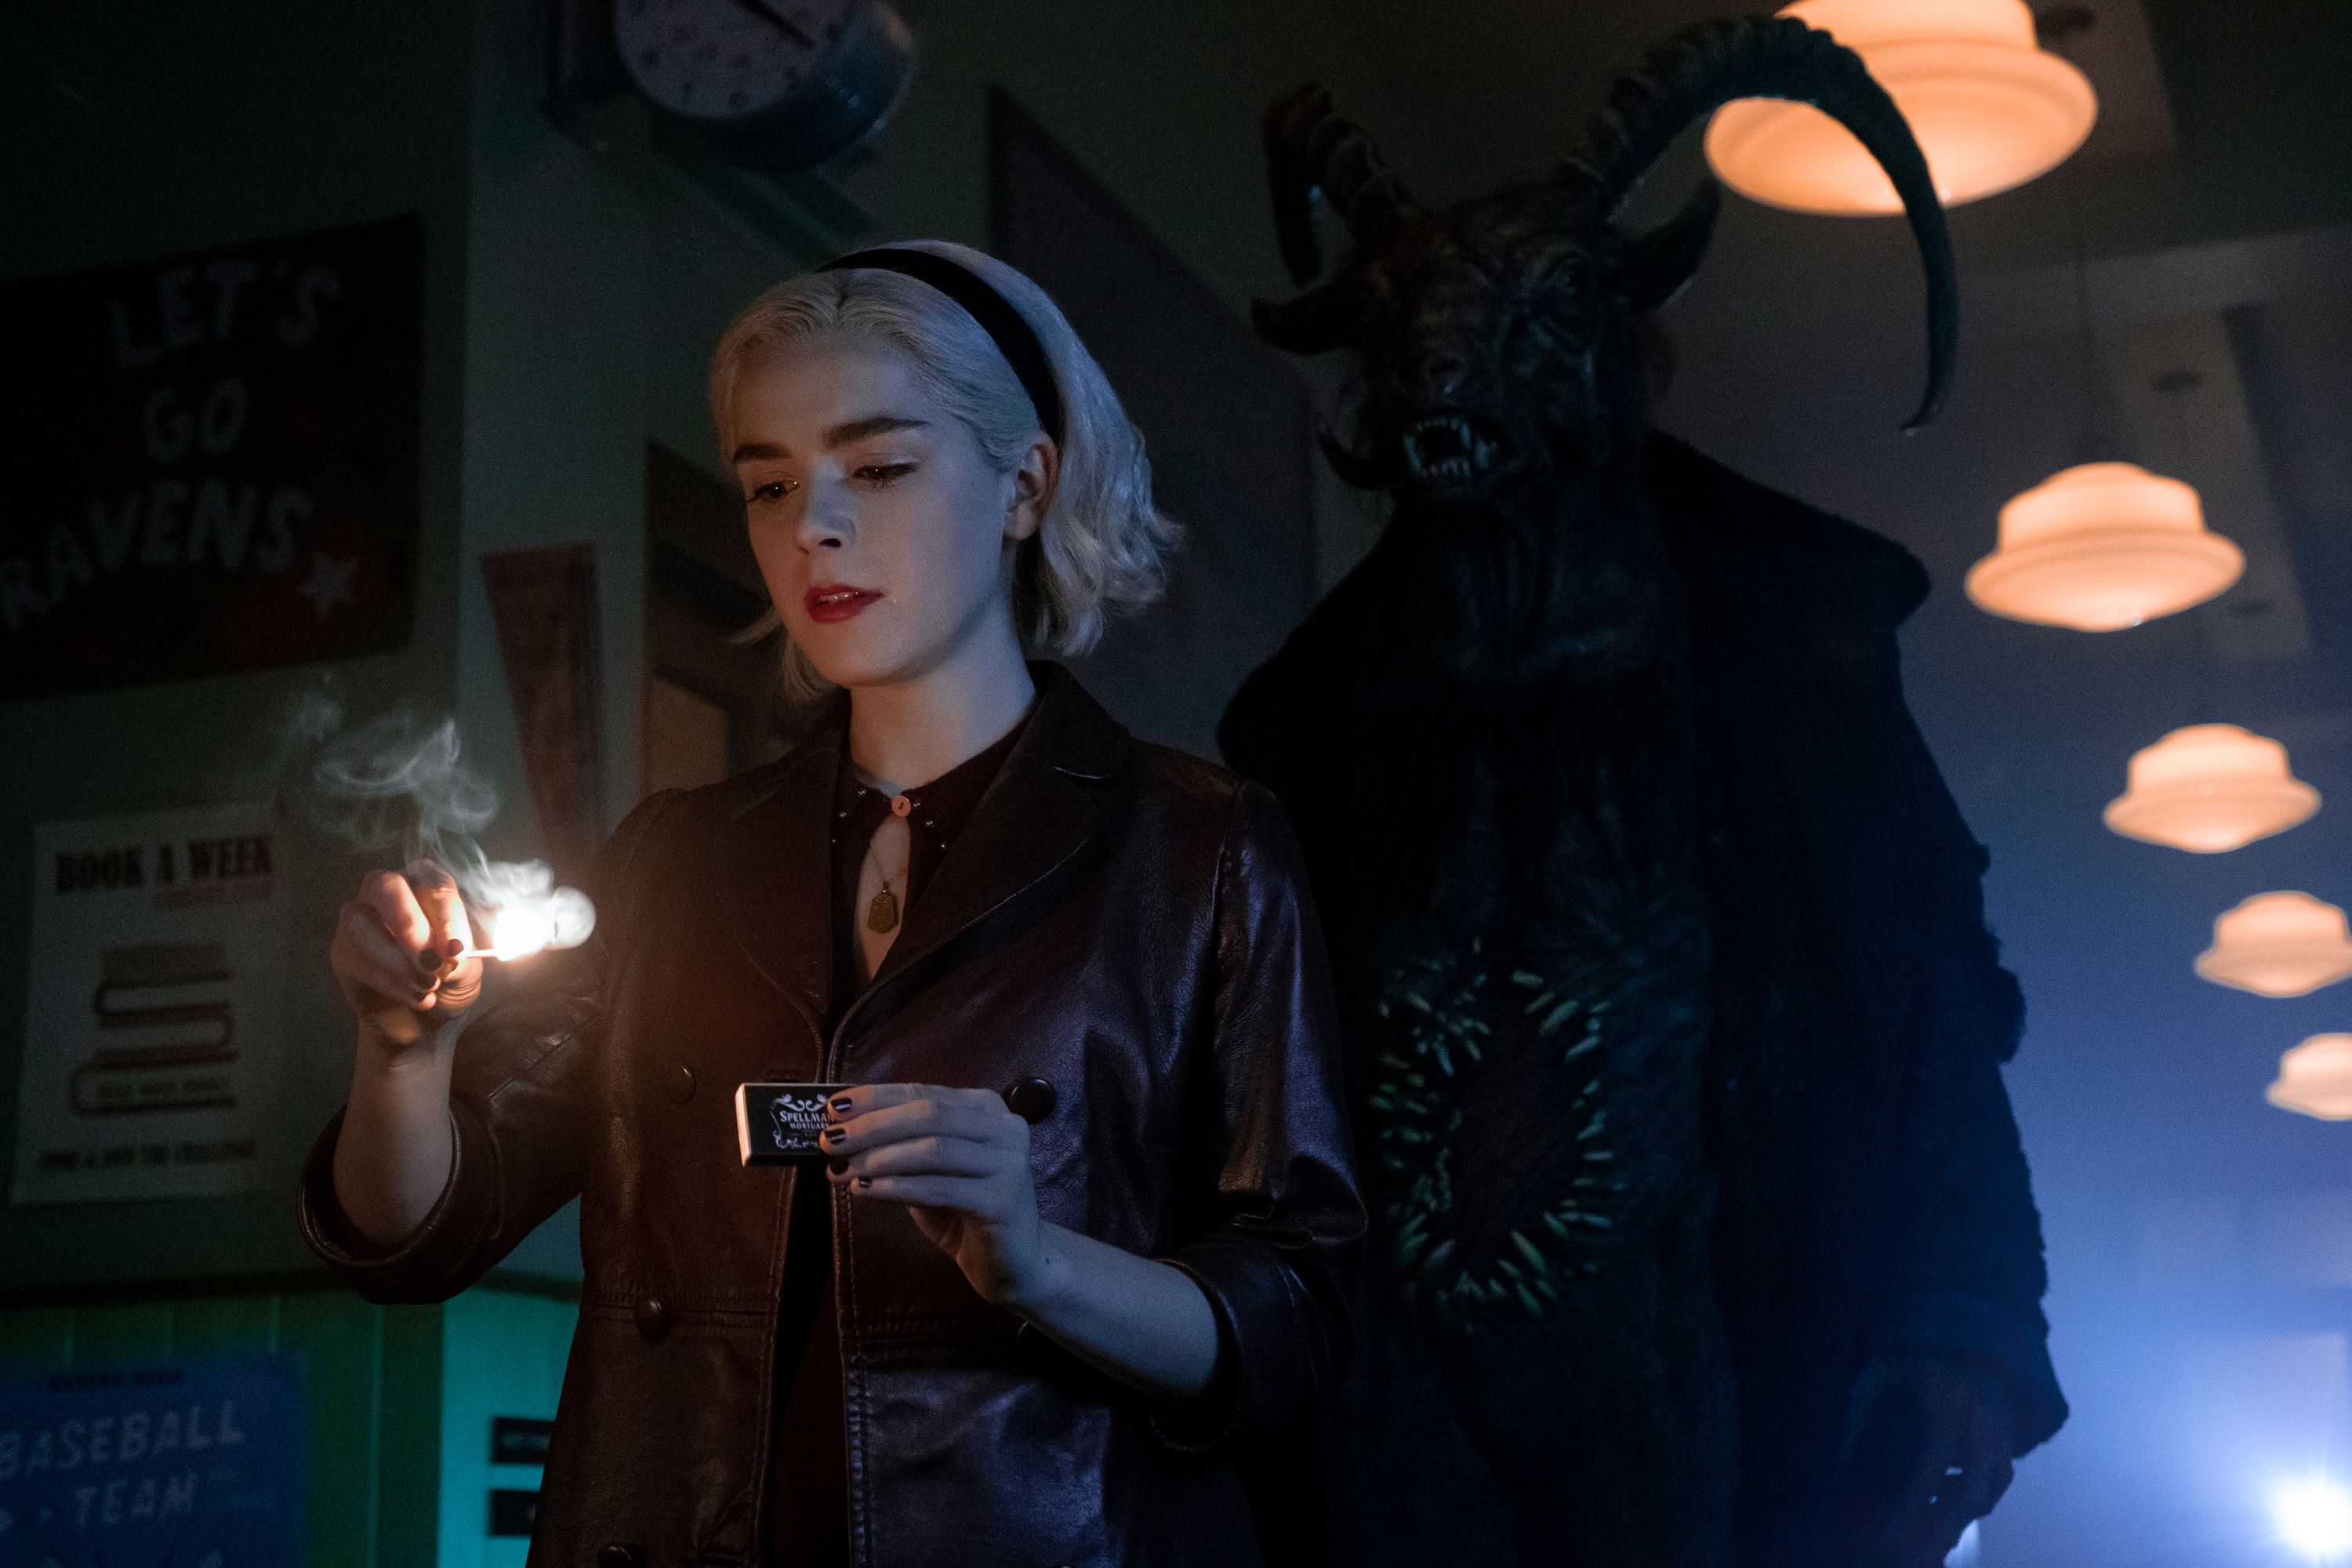 The Chilling Adventures of Sabrina' Season 2 Netflix News, Air Date